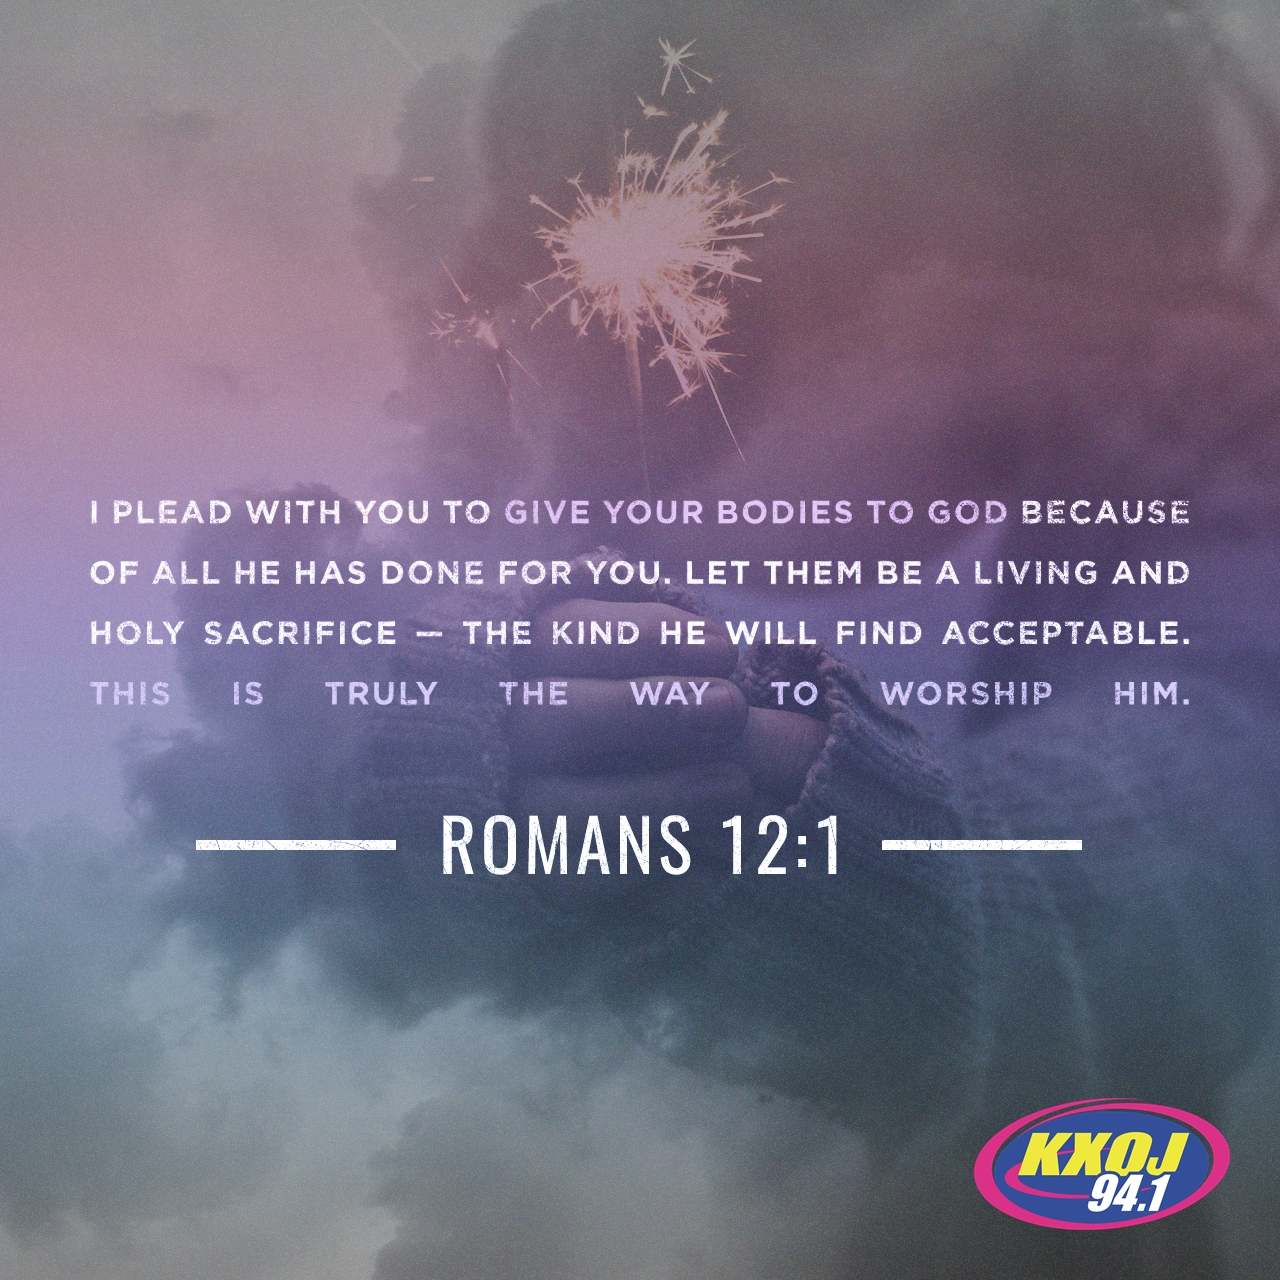 March 25th - Romans 12:1